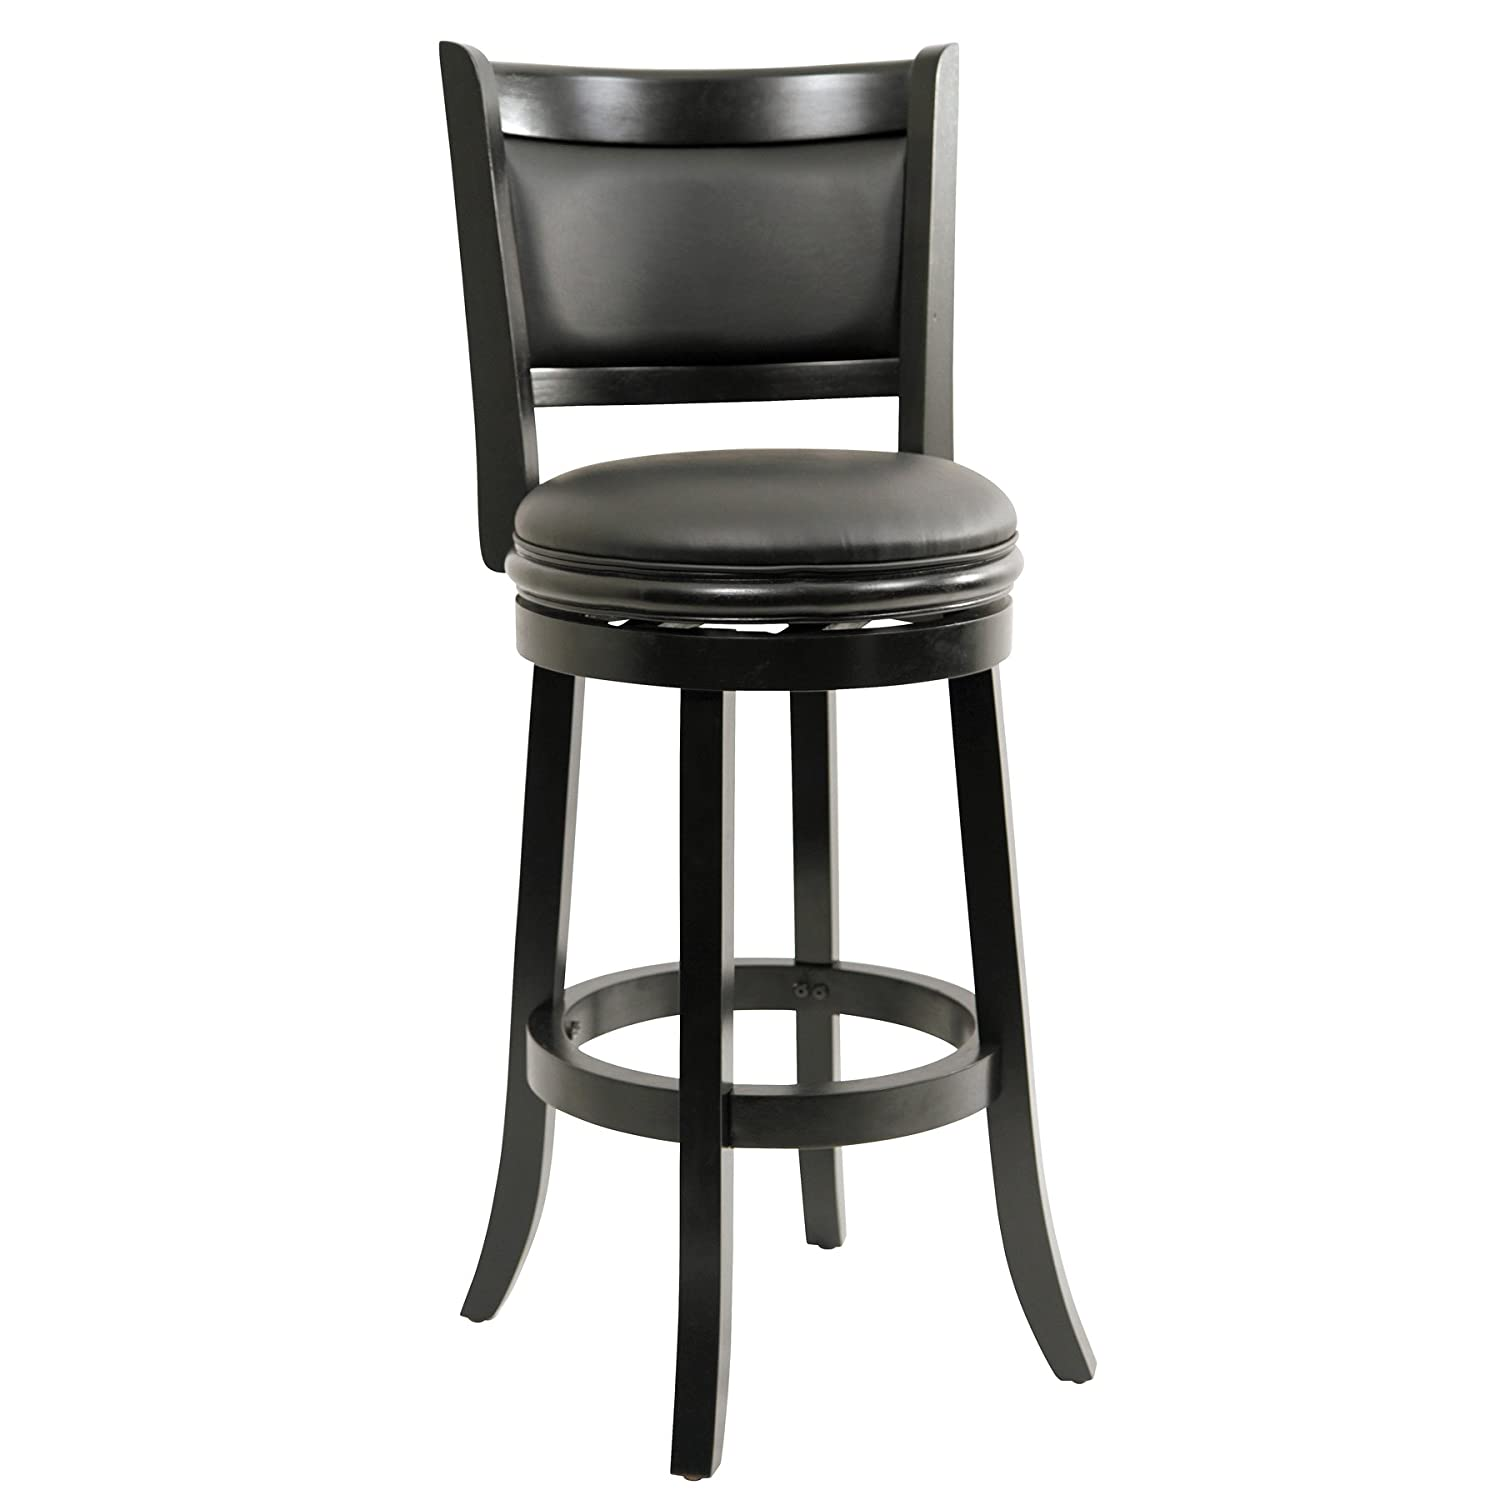 swivel bar stools. Amazon.com: Boraam 45829 Augusta Bar Height Swivel Stool, 29-Inch, Black: Kitchen \u0026 Dining Stools